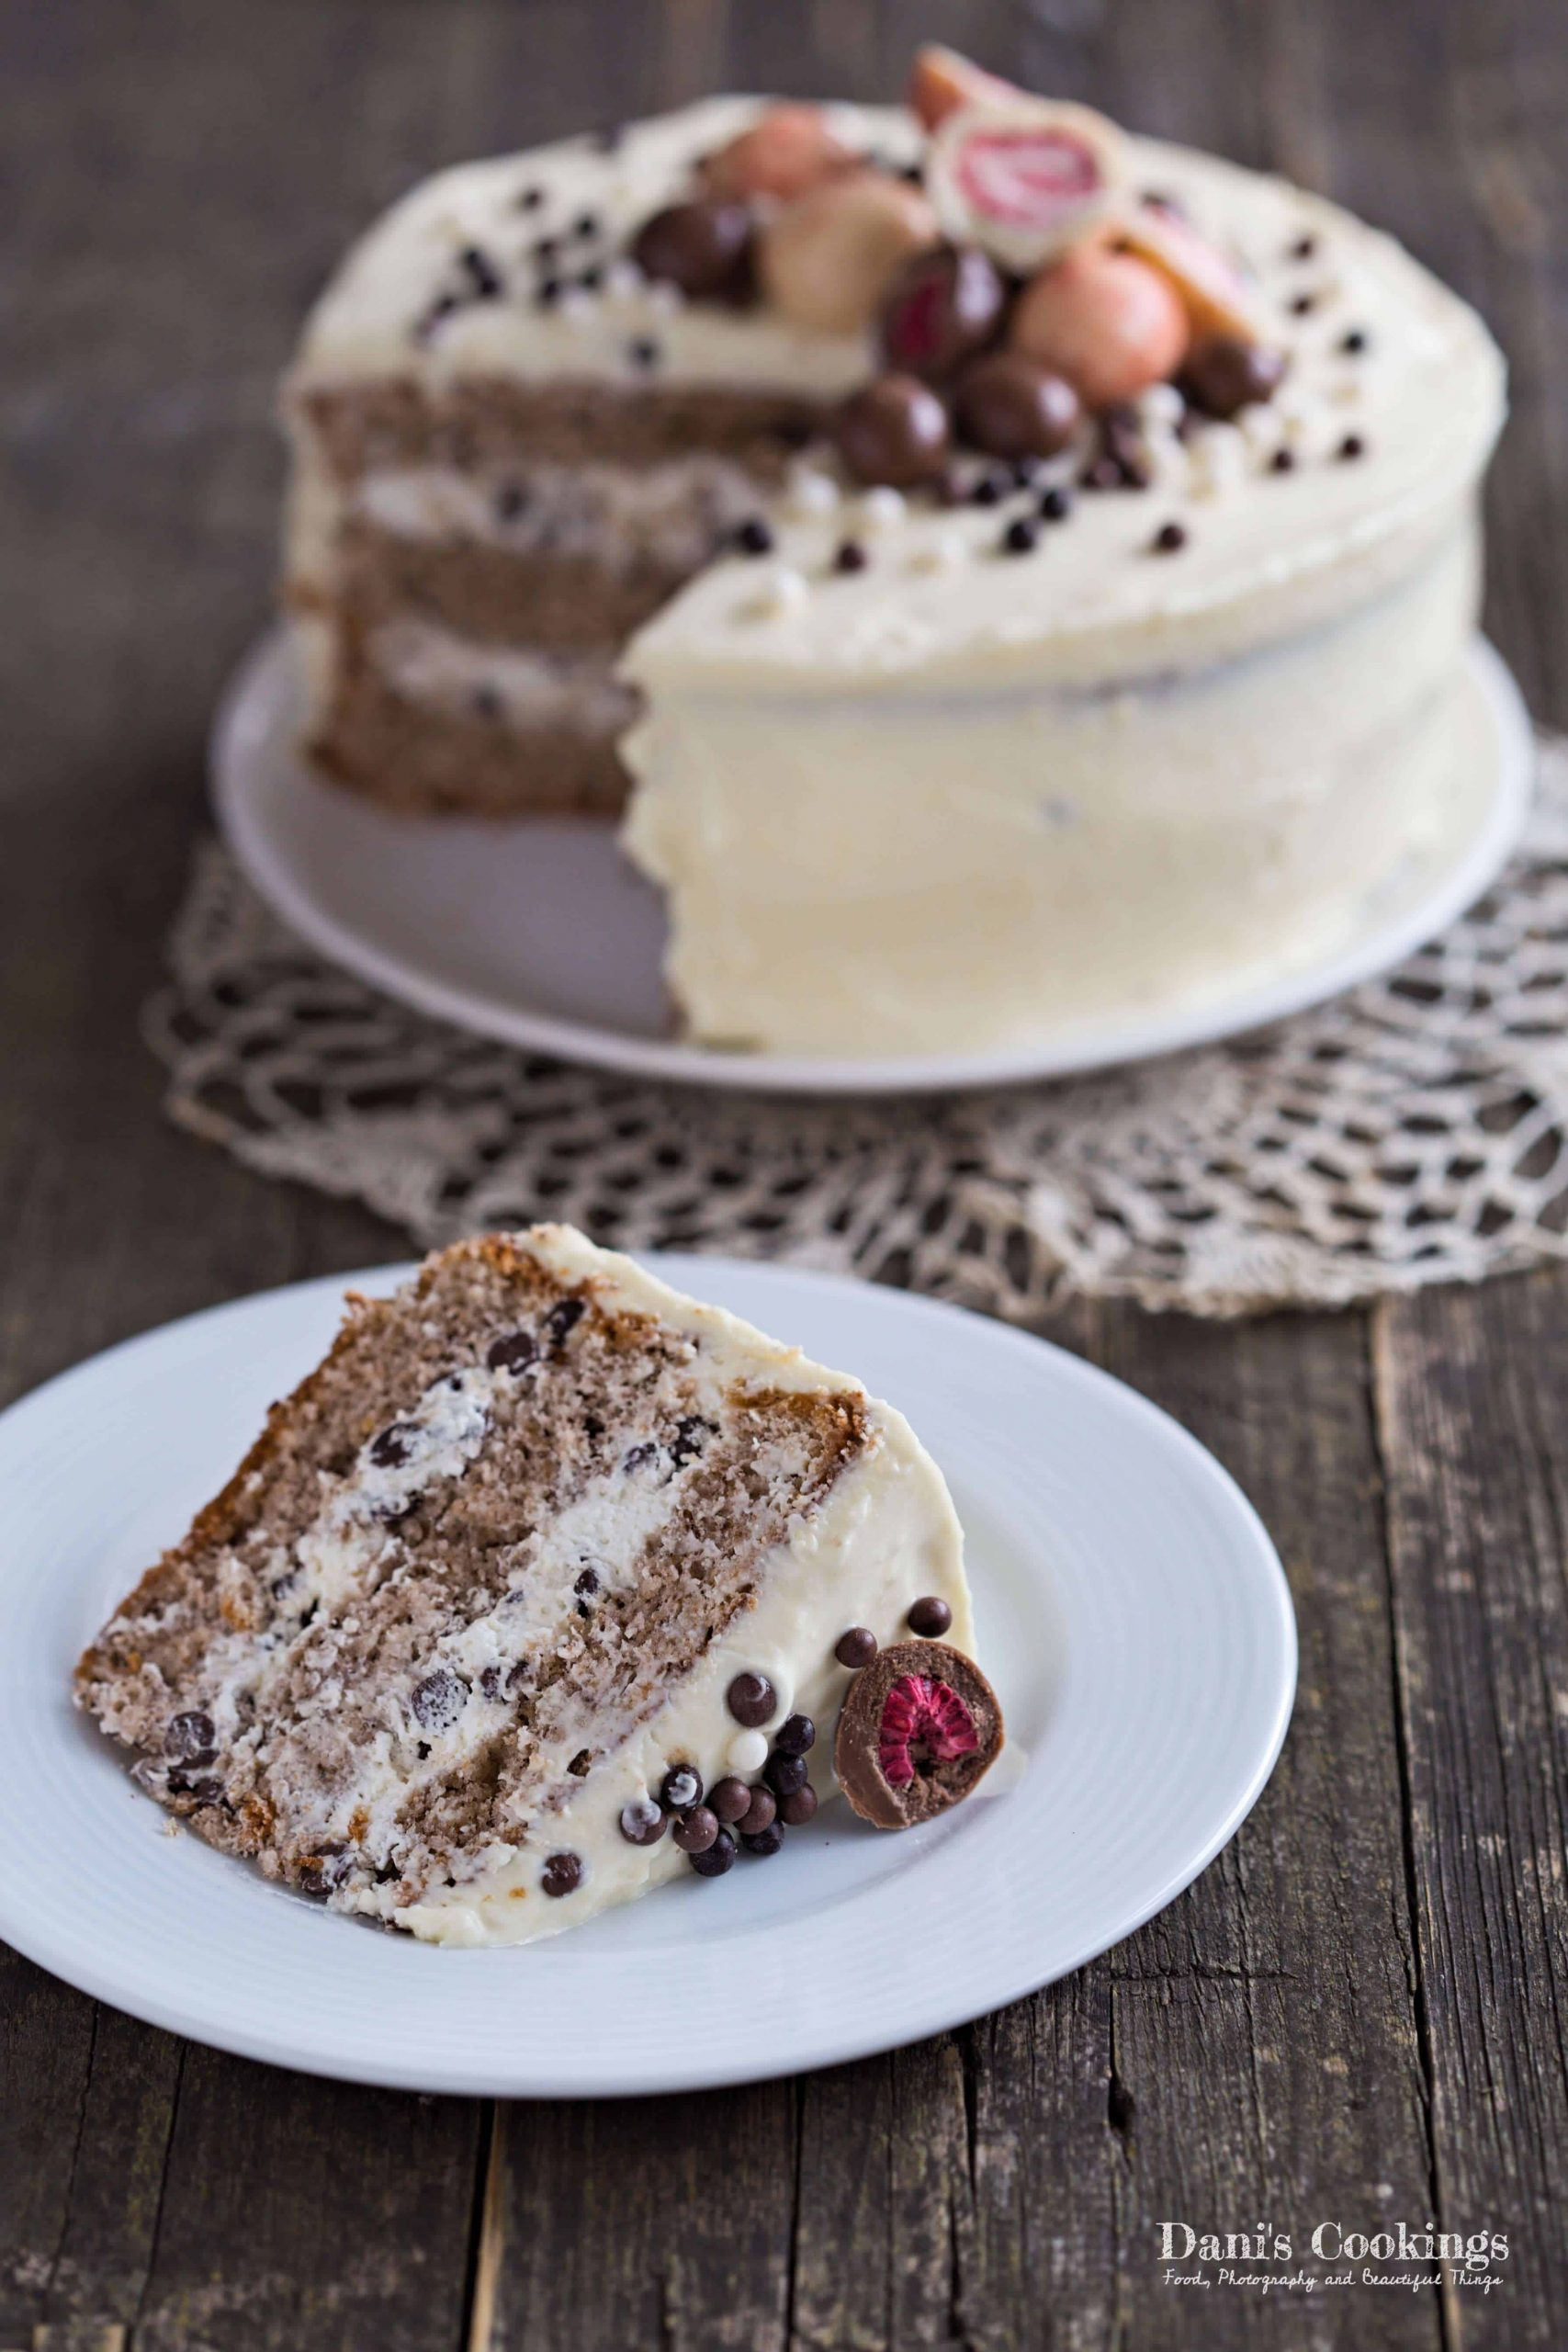 Walnut Sponge cake with Chocolate Chips Frosting | Dani's Cookings